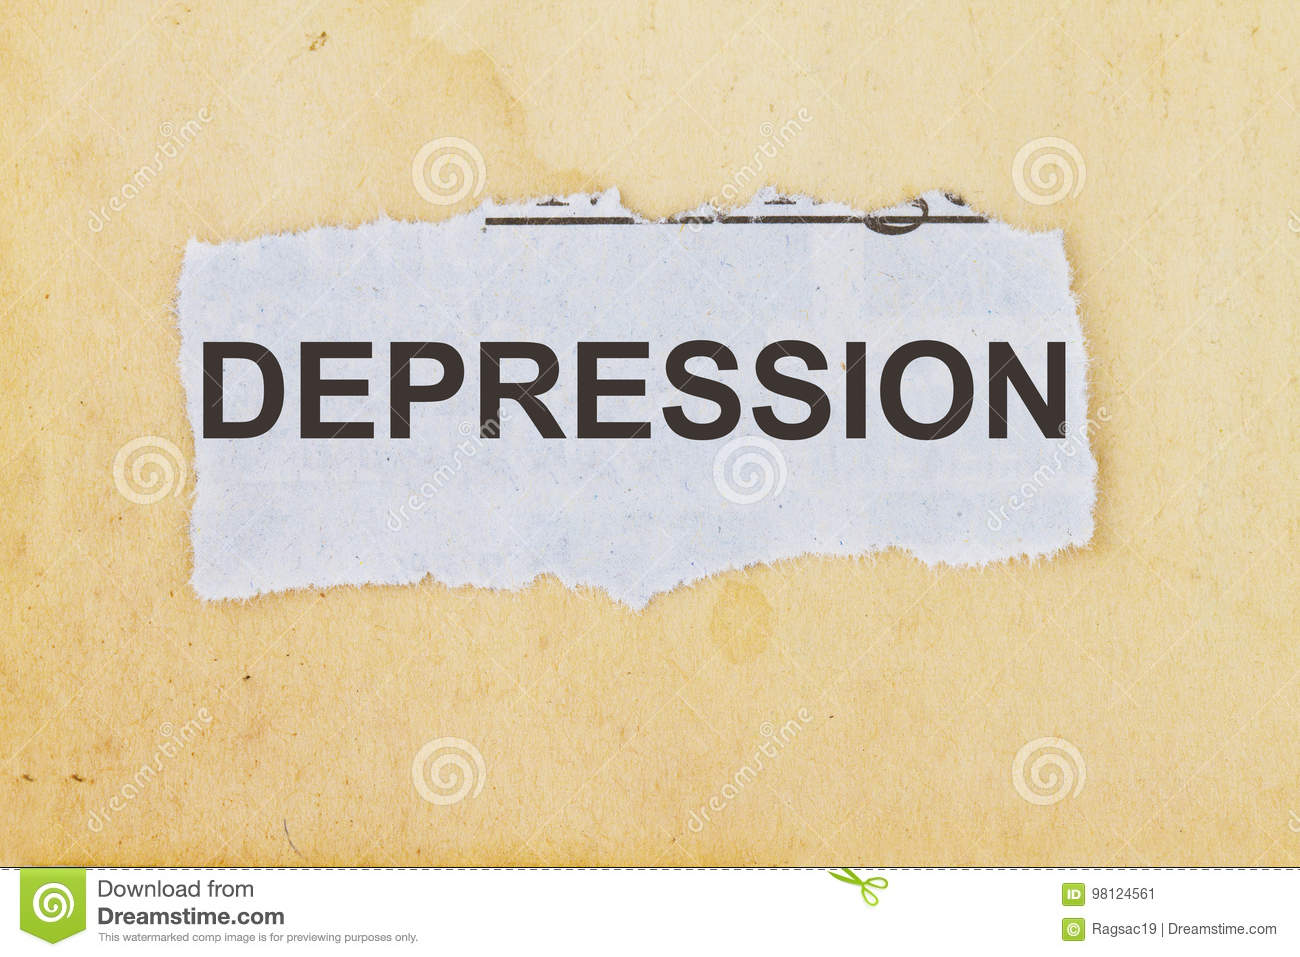 depression word written on a newspaper cut out stock image - image